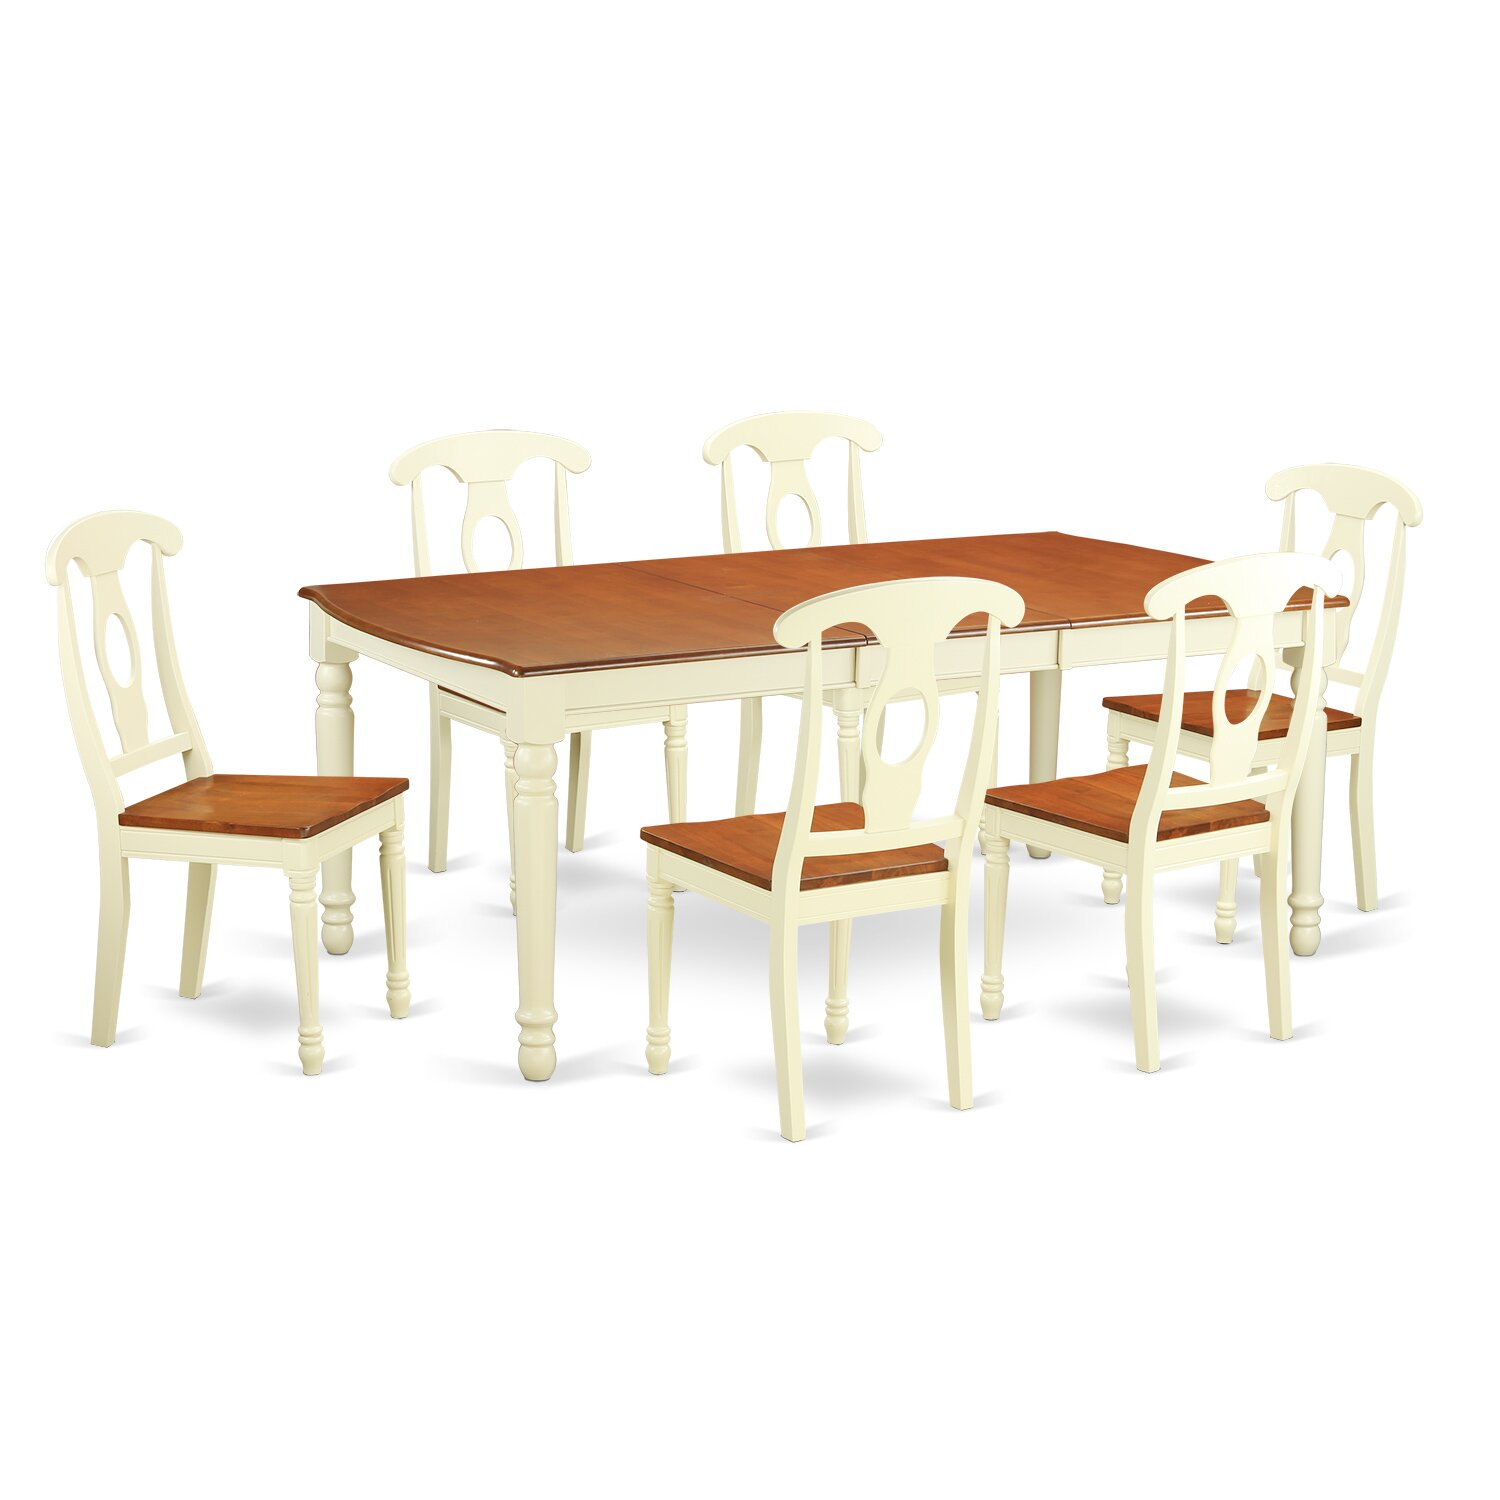 East west dover 7 piece dining set reviews wayfair for Kitchen table set 7 piece